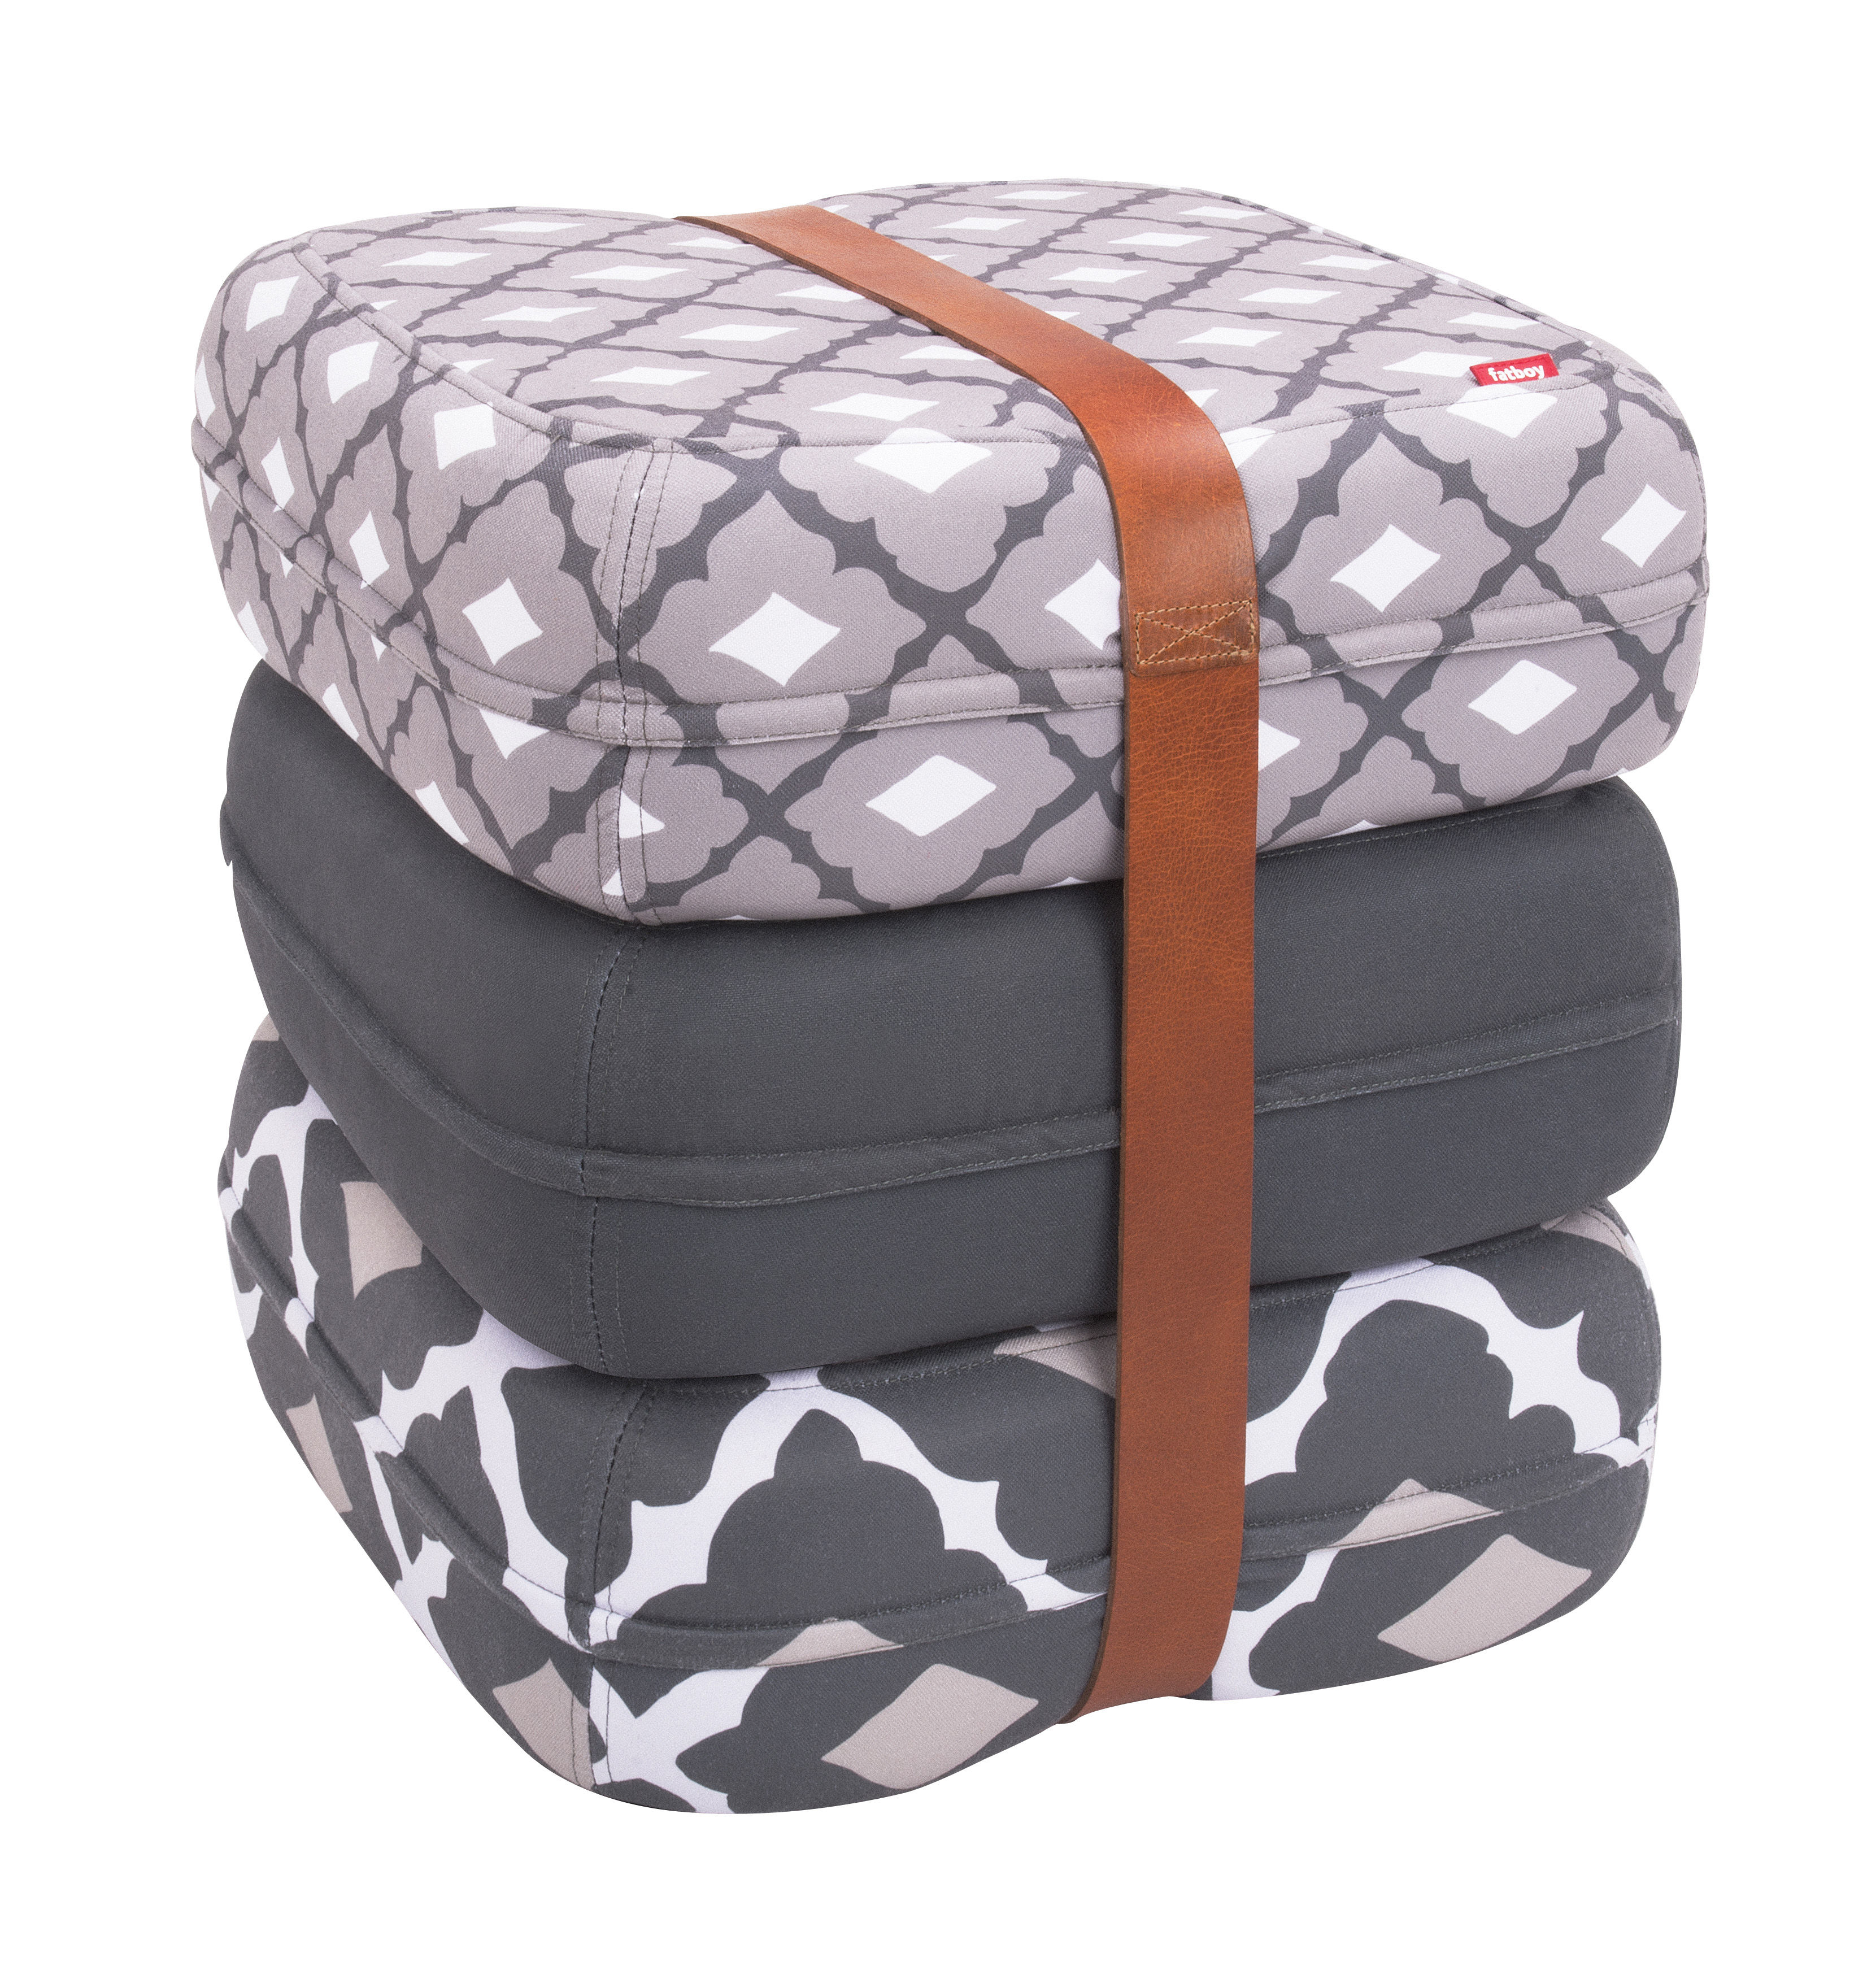 baboesjka pouf 3 floor cushions leather belt grey taupe white by fatboy. Black Bedroom Furniture Sets. Home Design Ideas